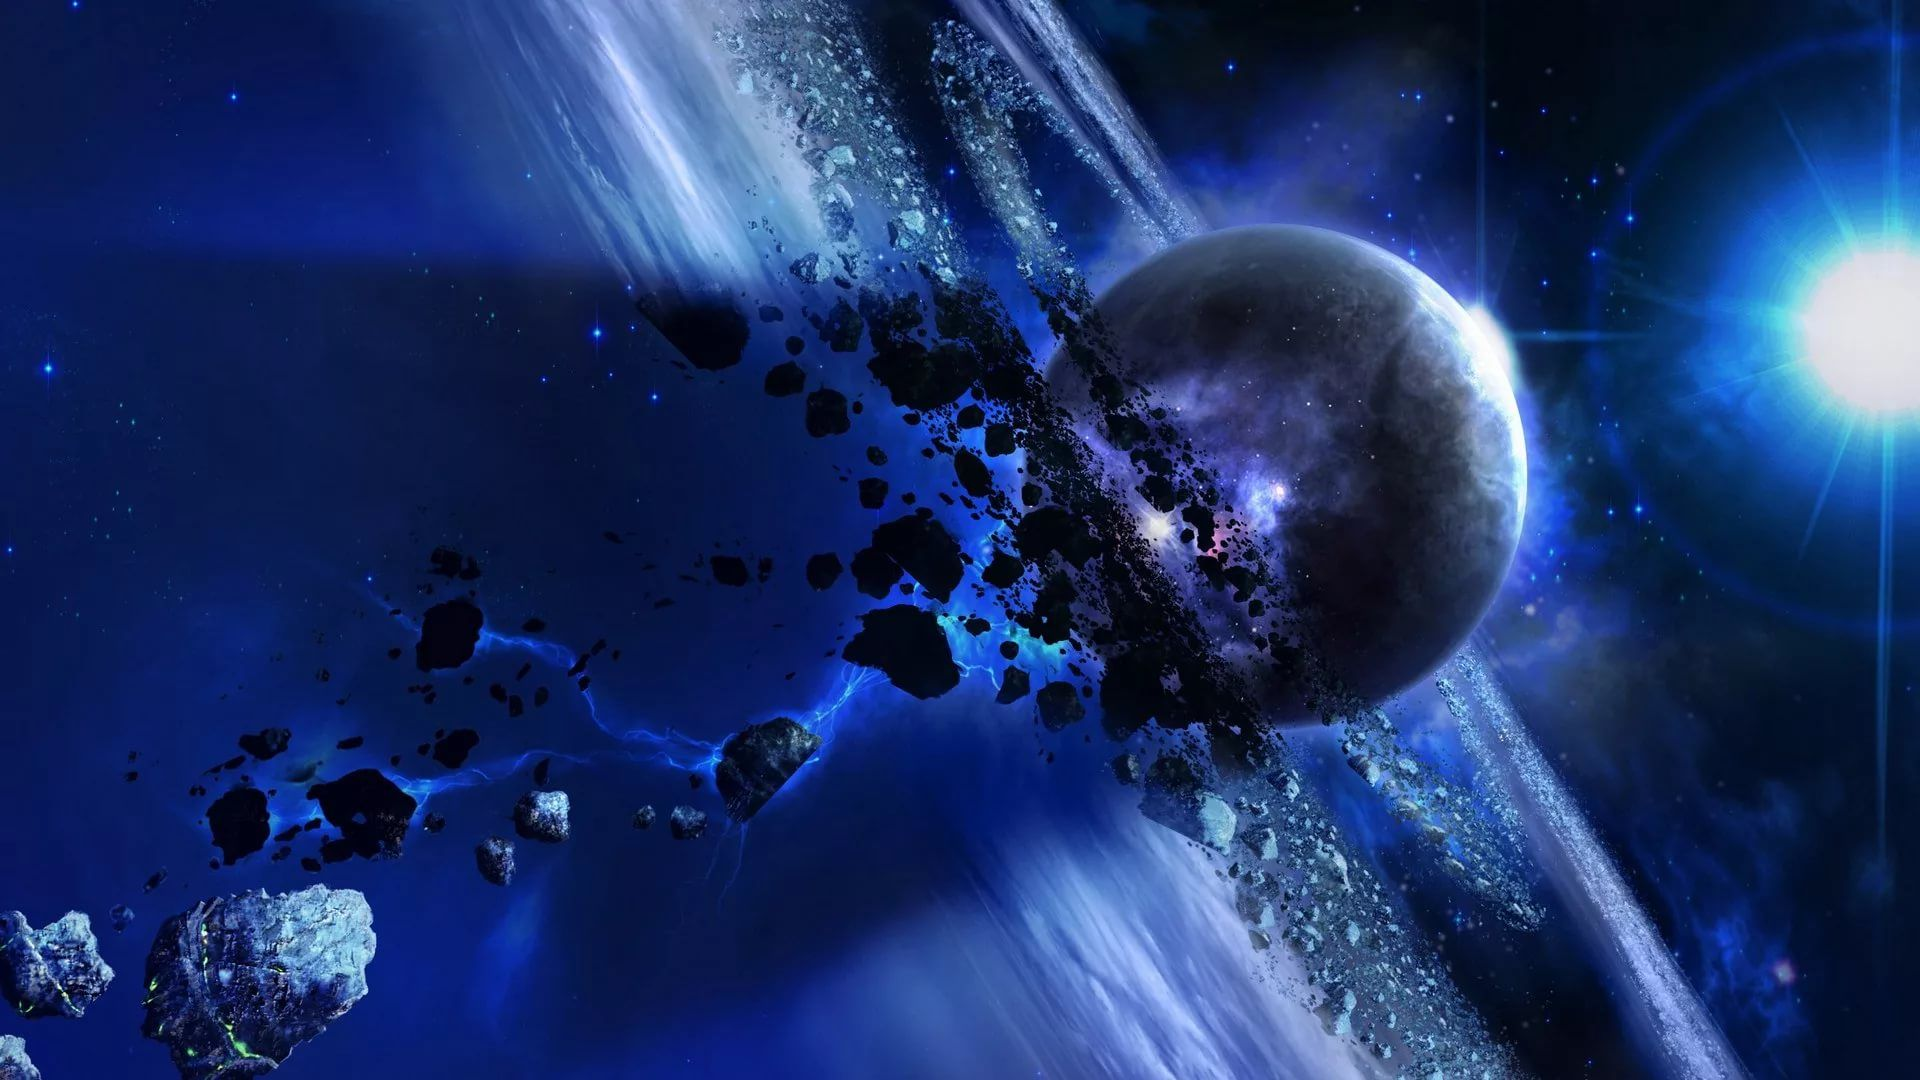 Blue Galaxy Wallpapers 24 Images Wallpaperboat